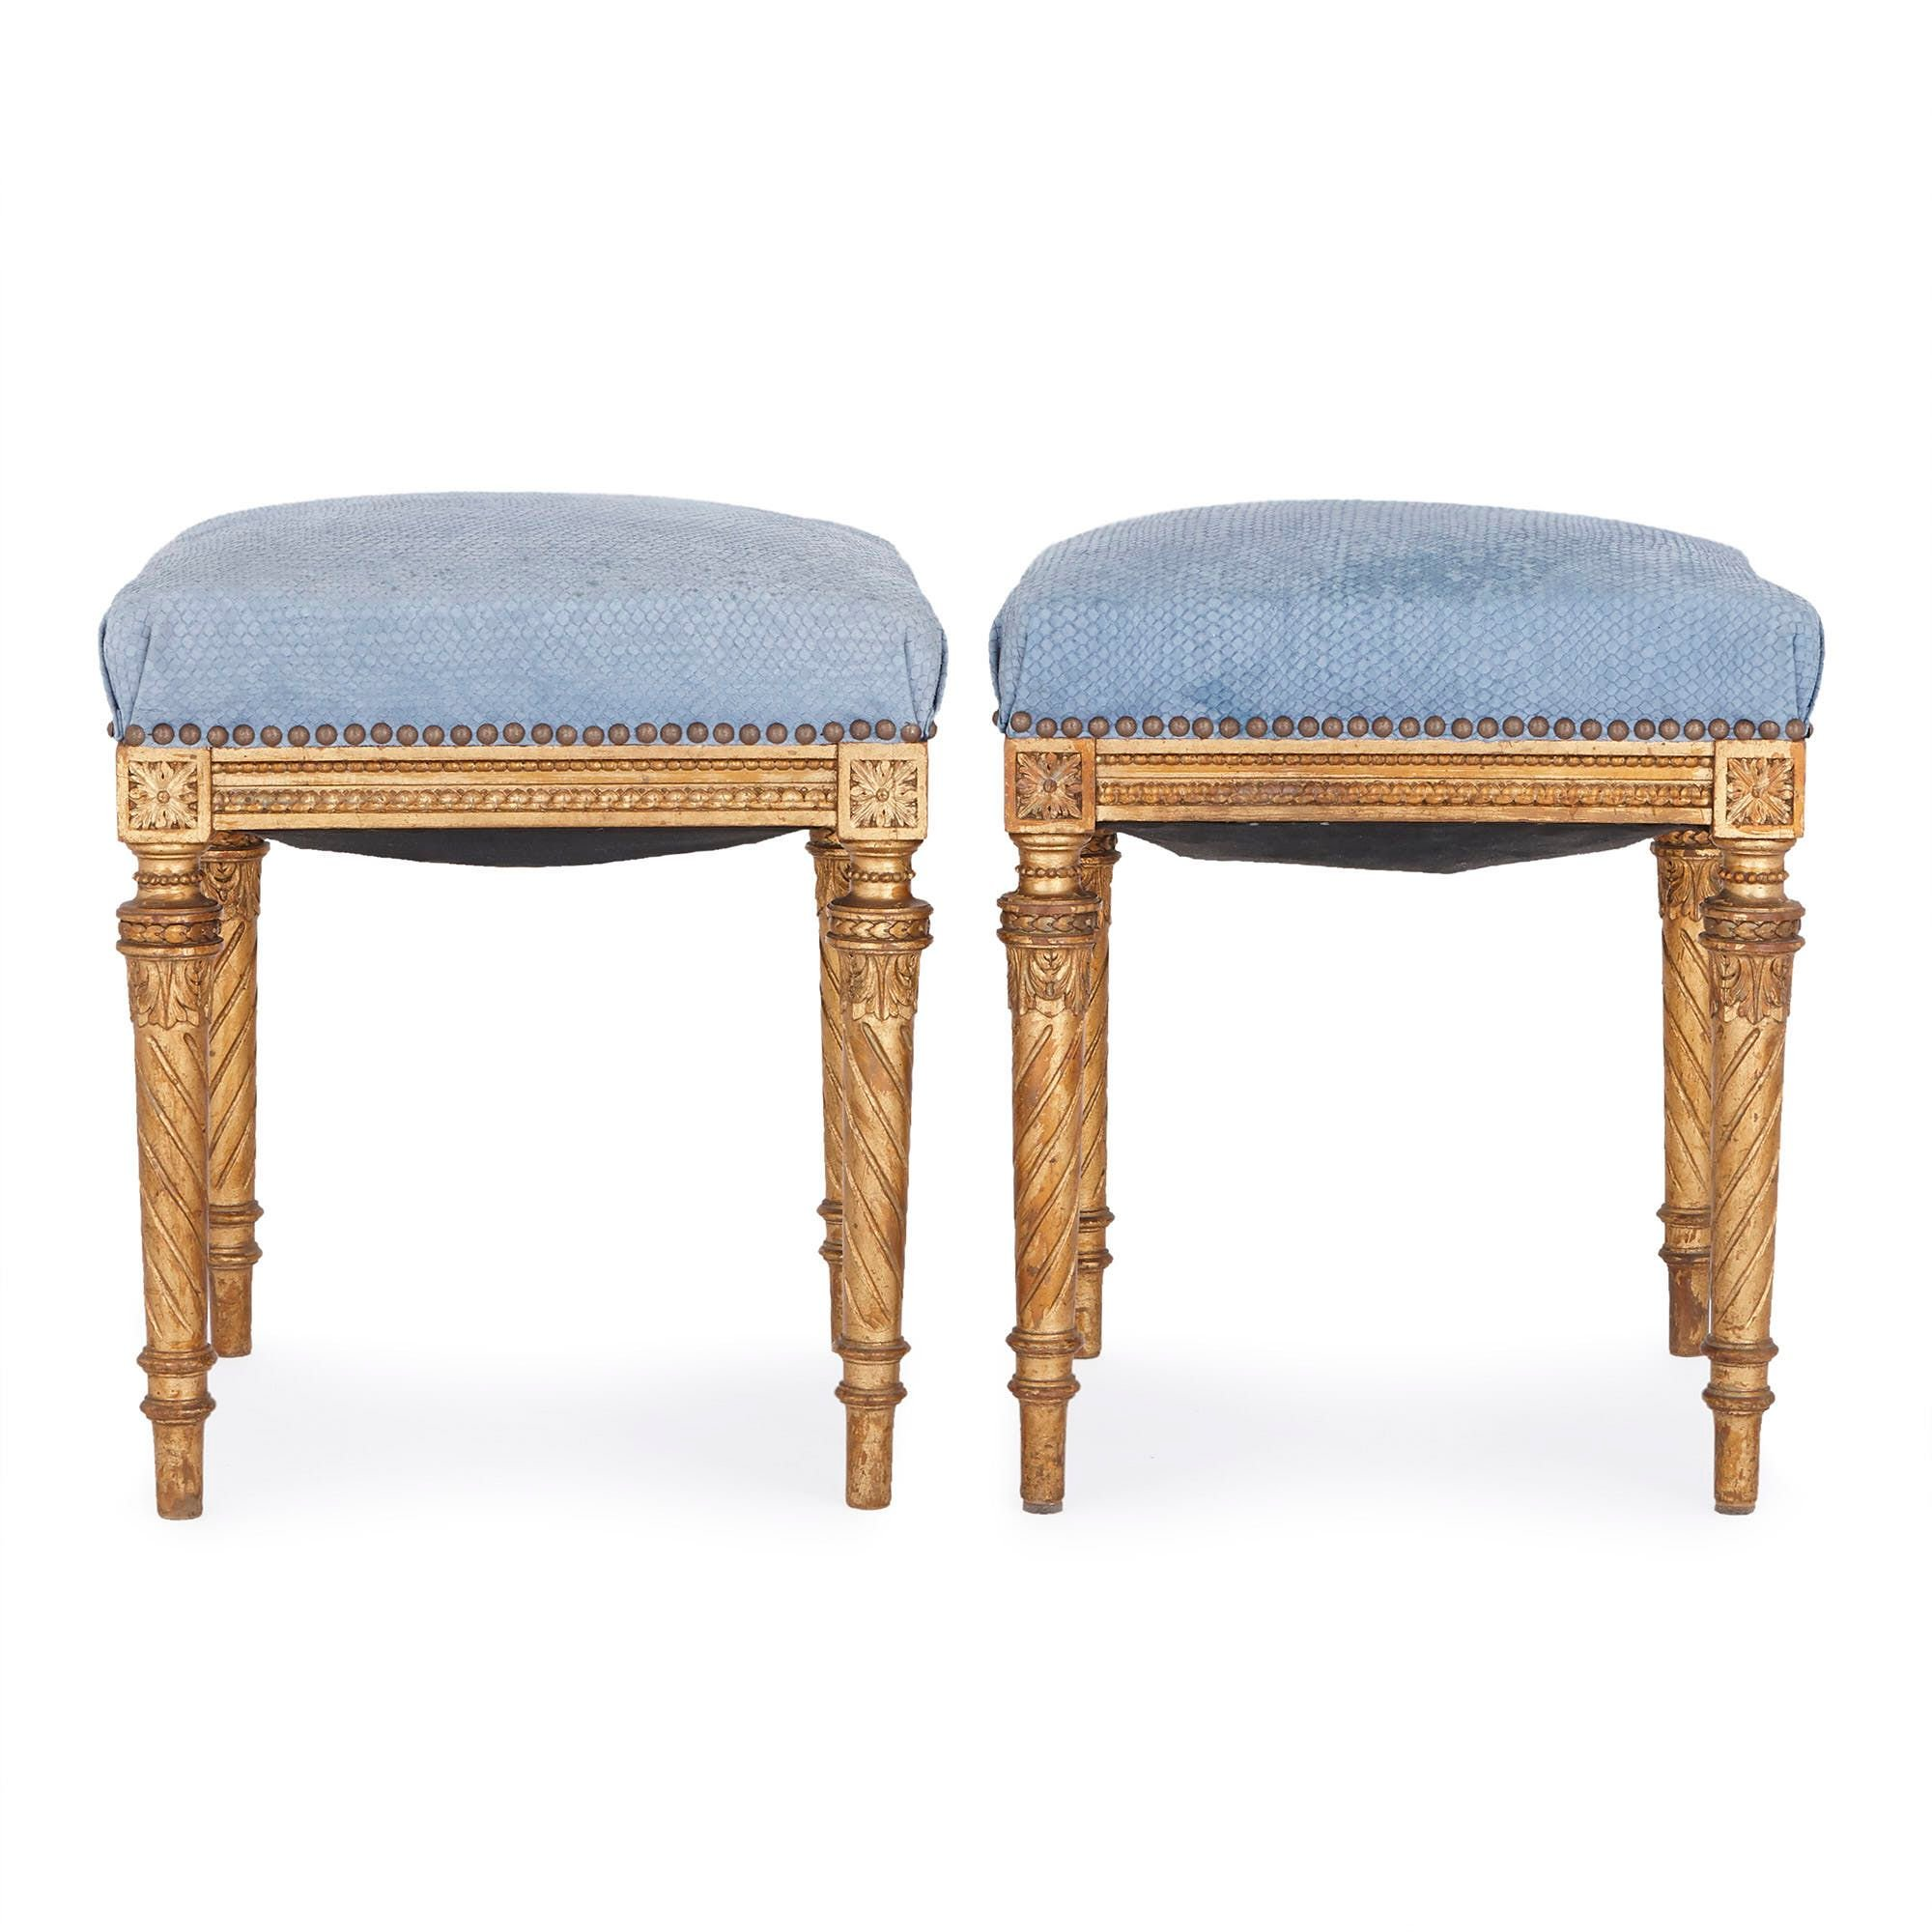 Pleasing Two Louis Xvi Style Upholstered Carved Giltwood Stools Caraccident5 Cool Chair Designs And Ideas Caraccident5Info